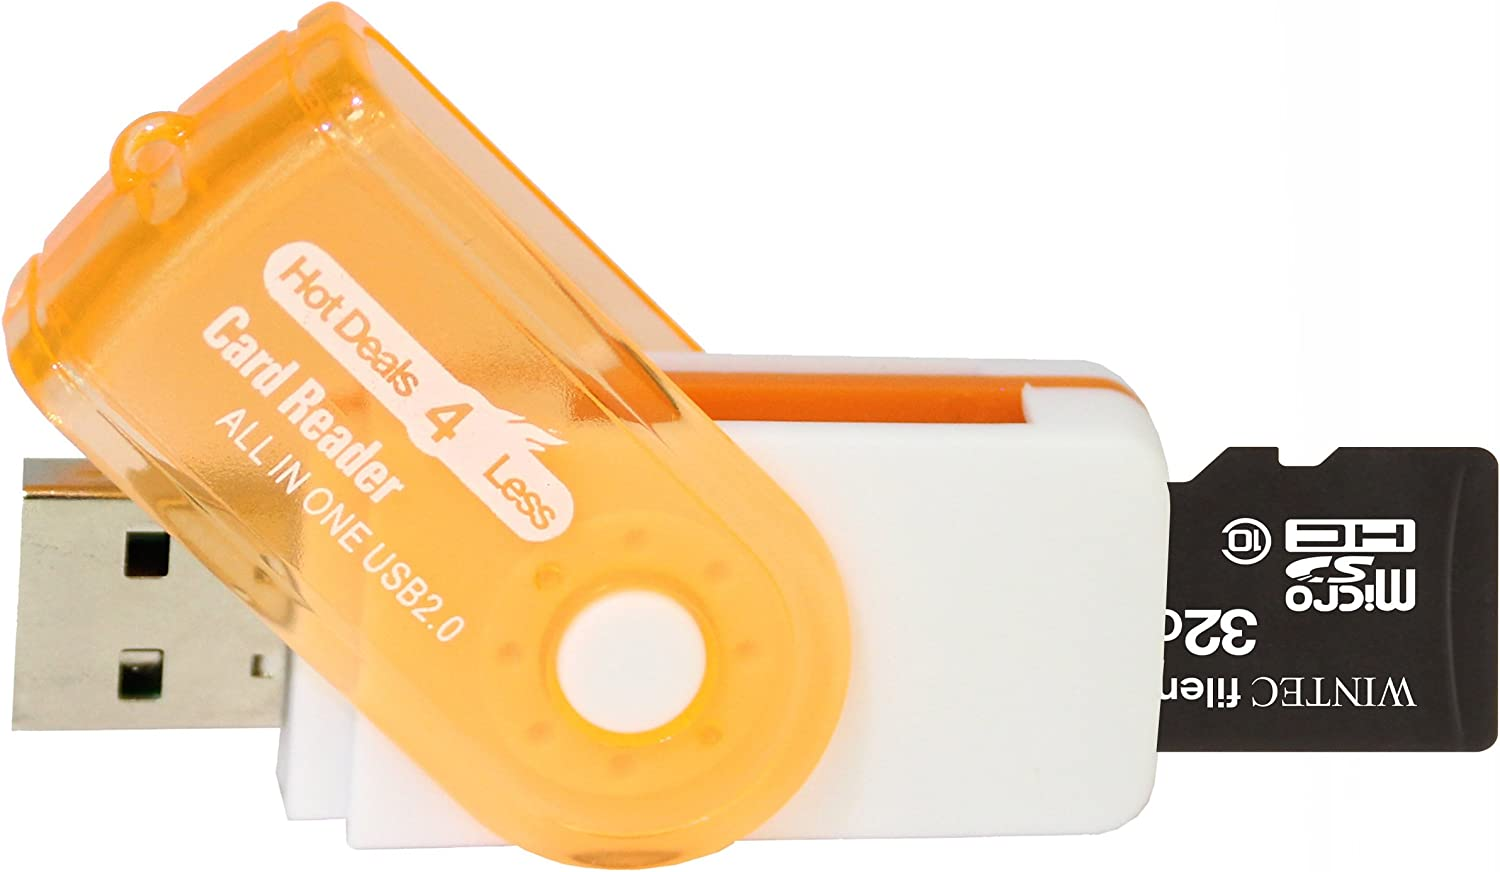 A free Hot Deals 4 Less High Speed all in one Card Reader is included 32GB MicroSDHC Class 10 High Speed Memory Card Comes with. Perfect Fit For Nokia X5-01 X6